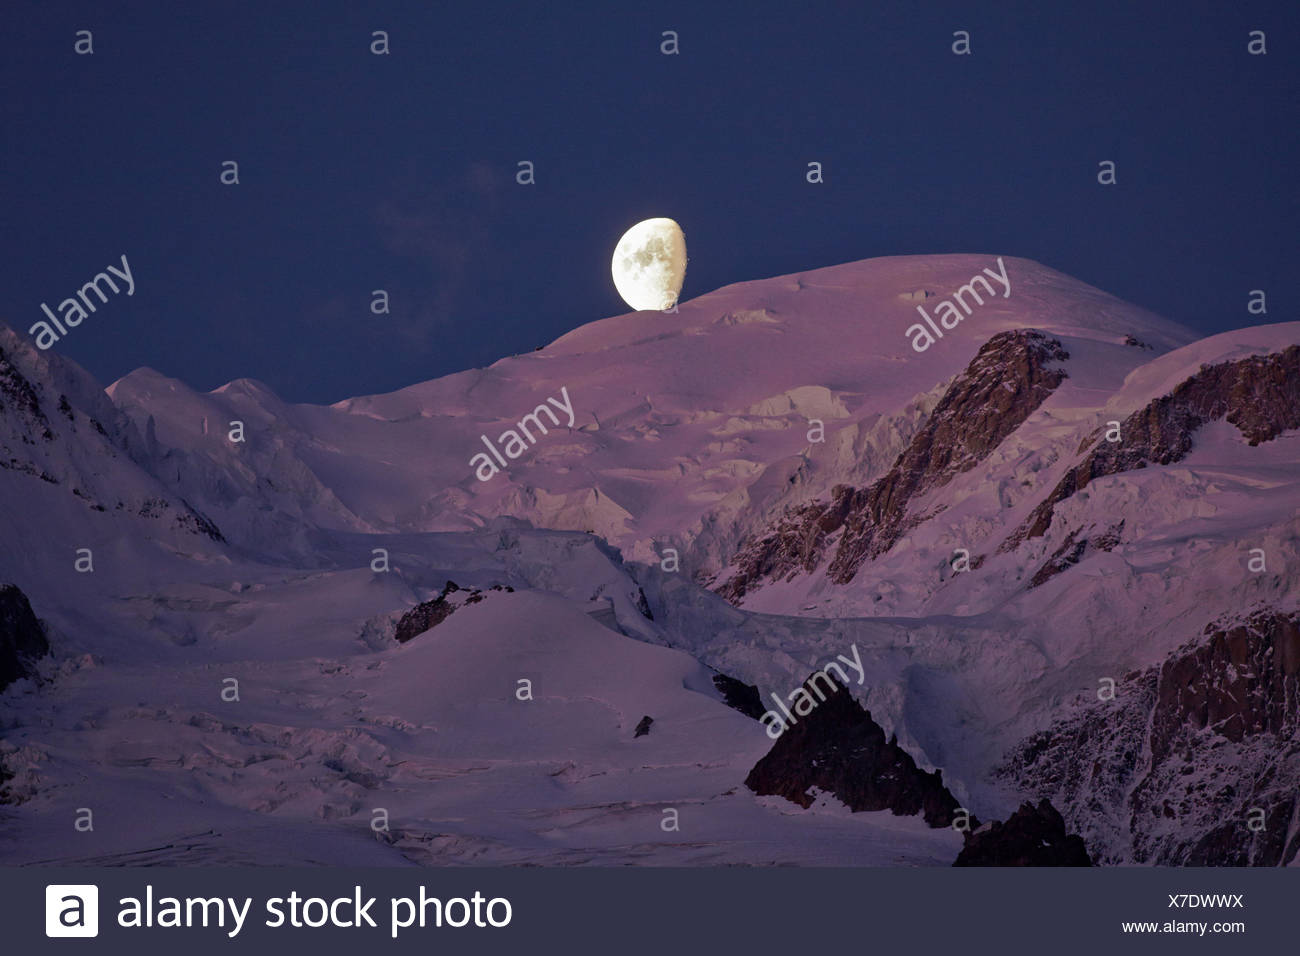 geography / travel, France, Moonset on Mont- Blanc (4810m) at sunrise, Chamonix, Additional-Rights-Clearance-Info-Not-Available - Stock Image